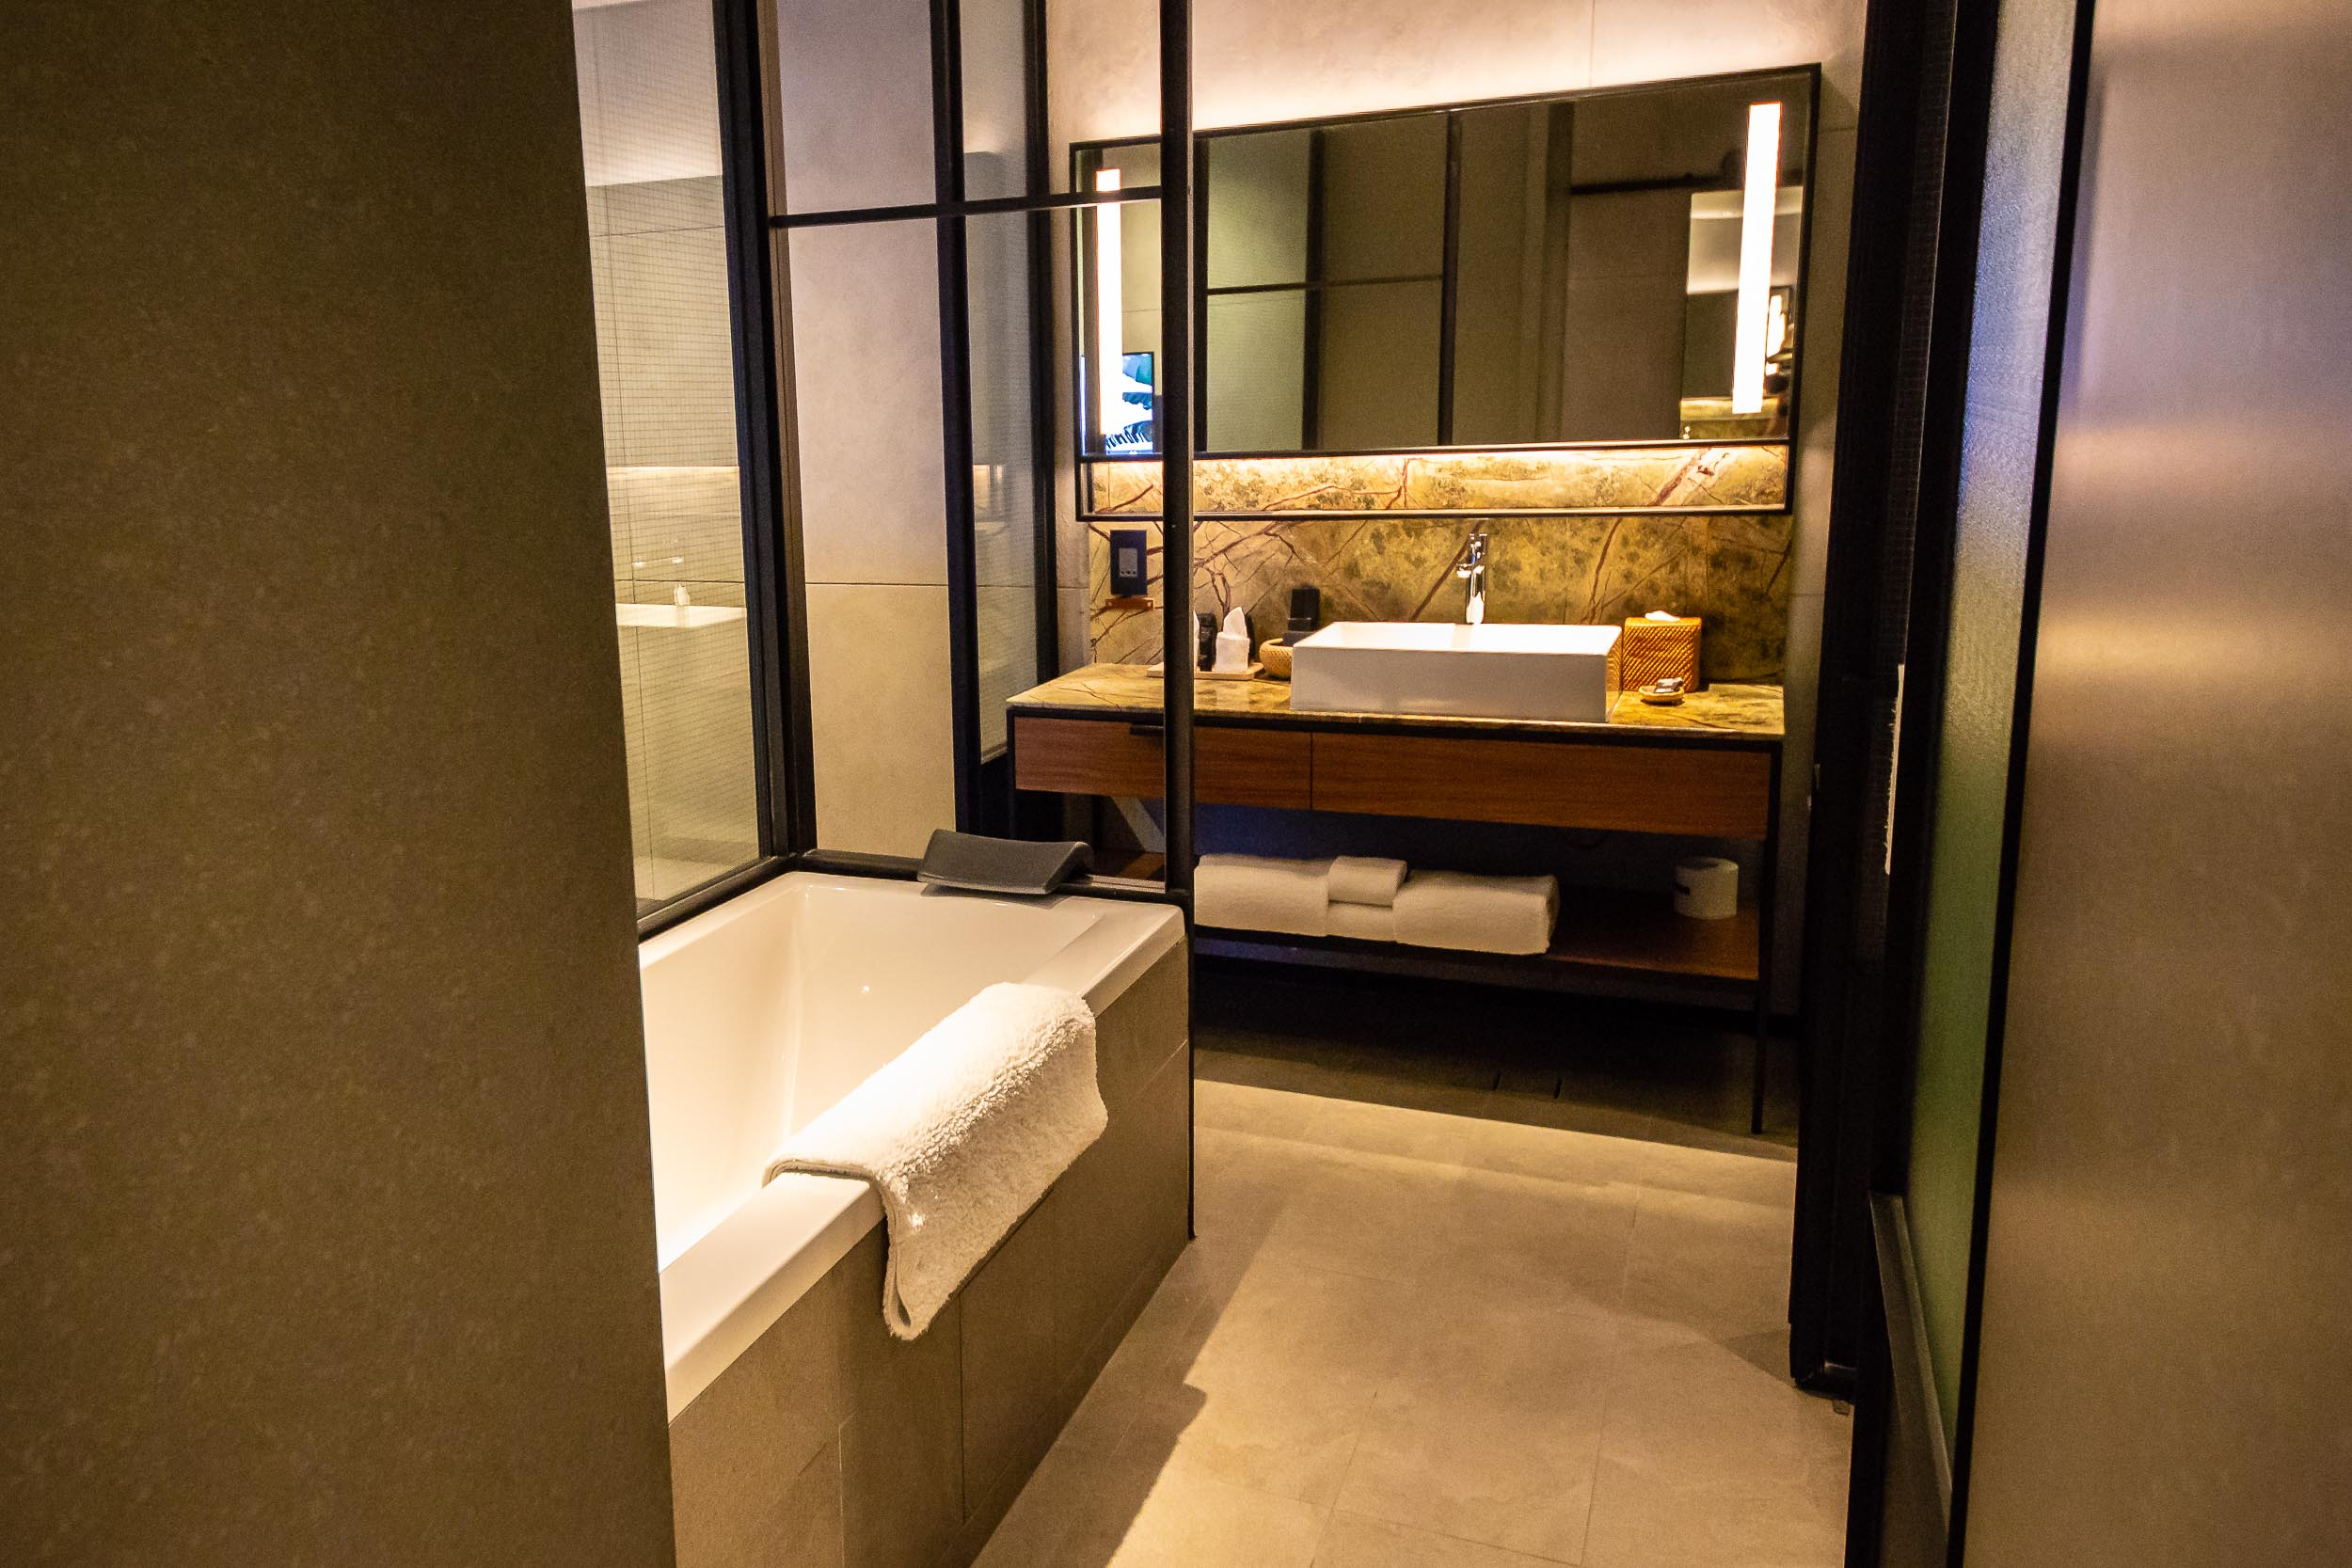 River View Room, Bathroom, The Warehouse Hotel, Singapore